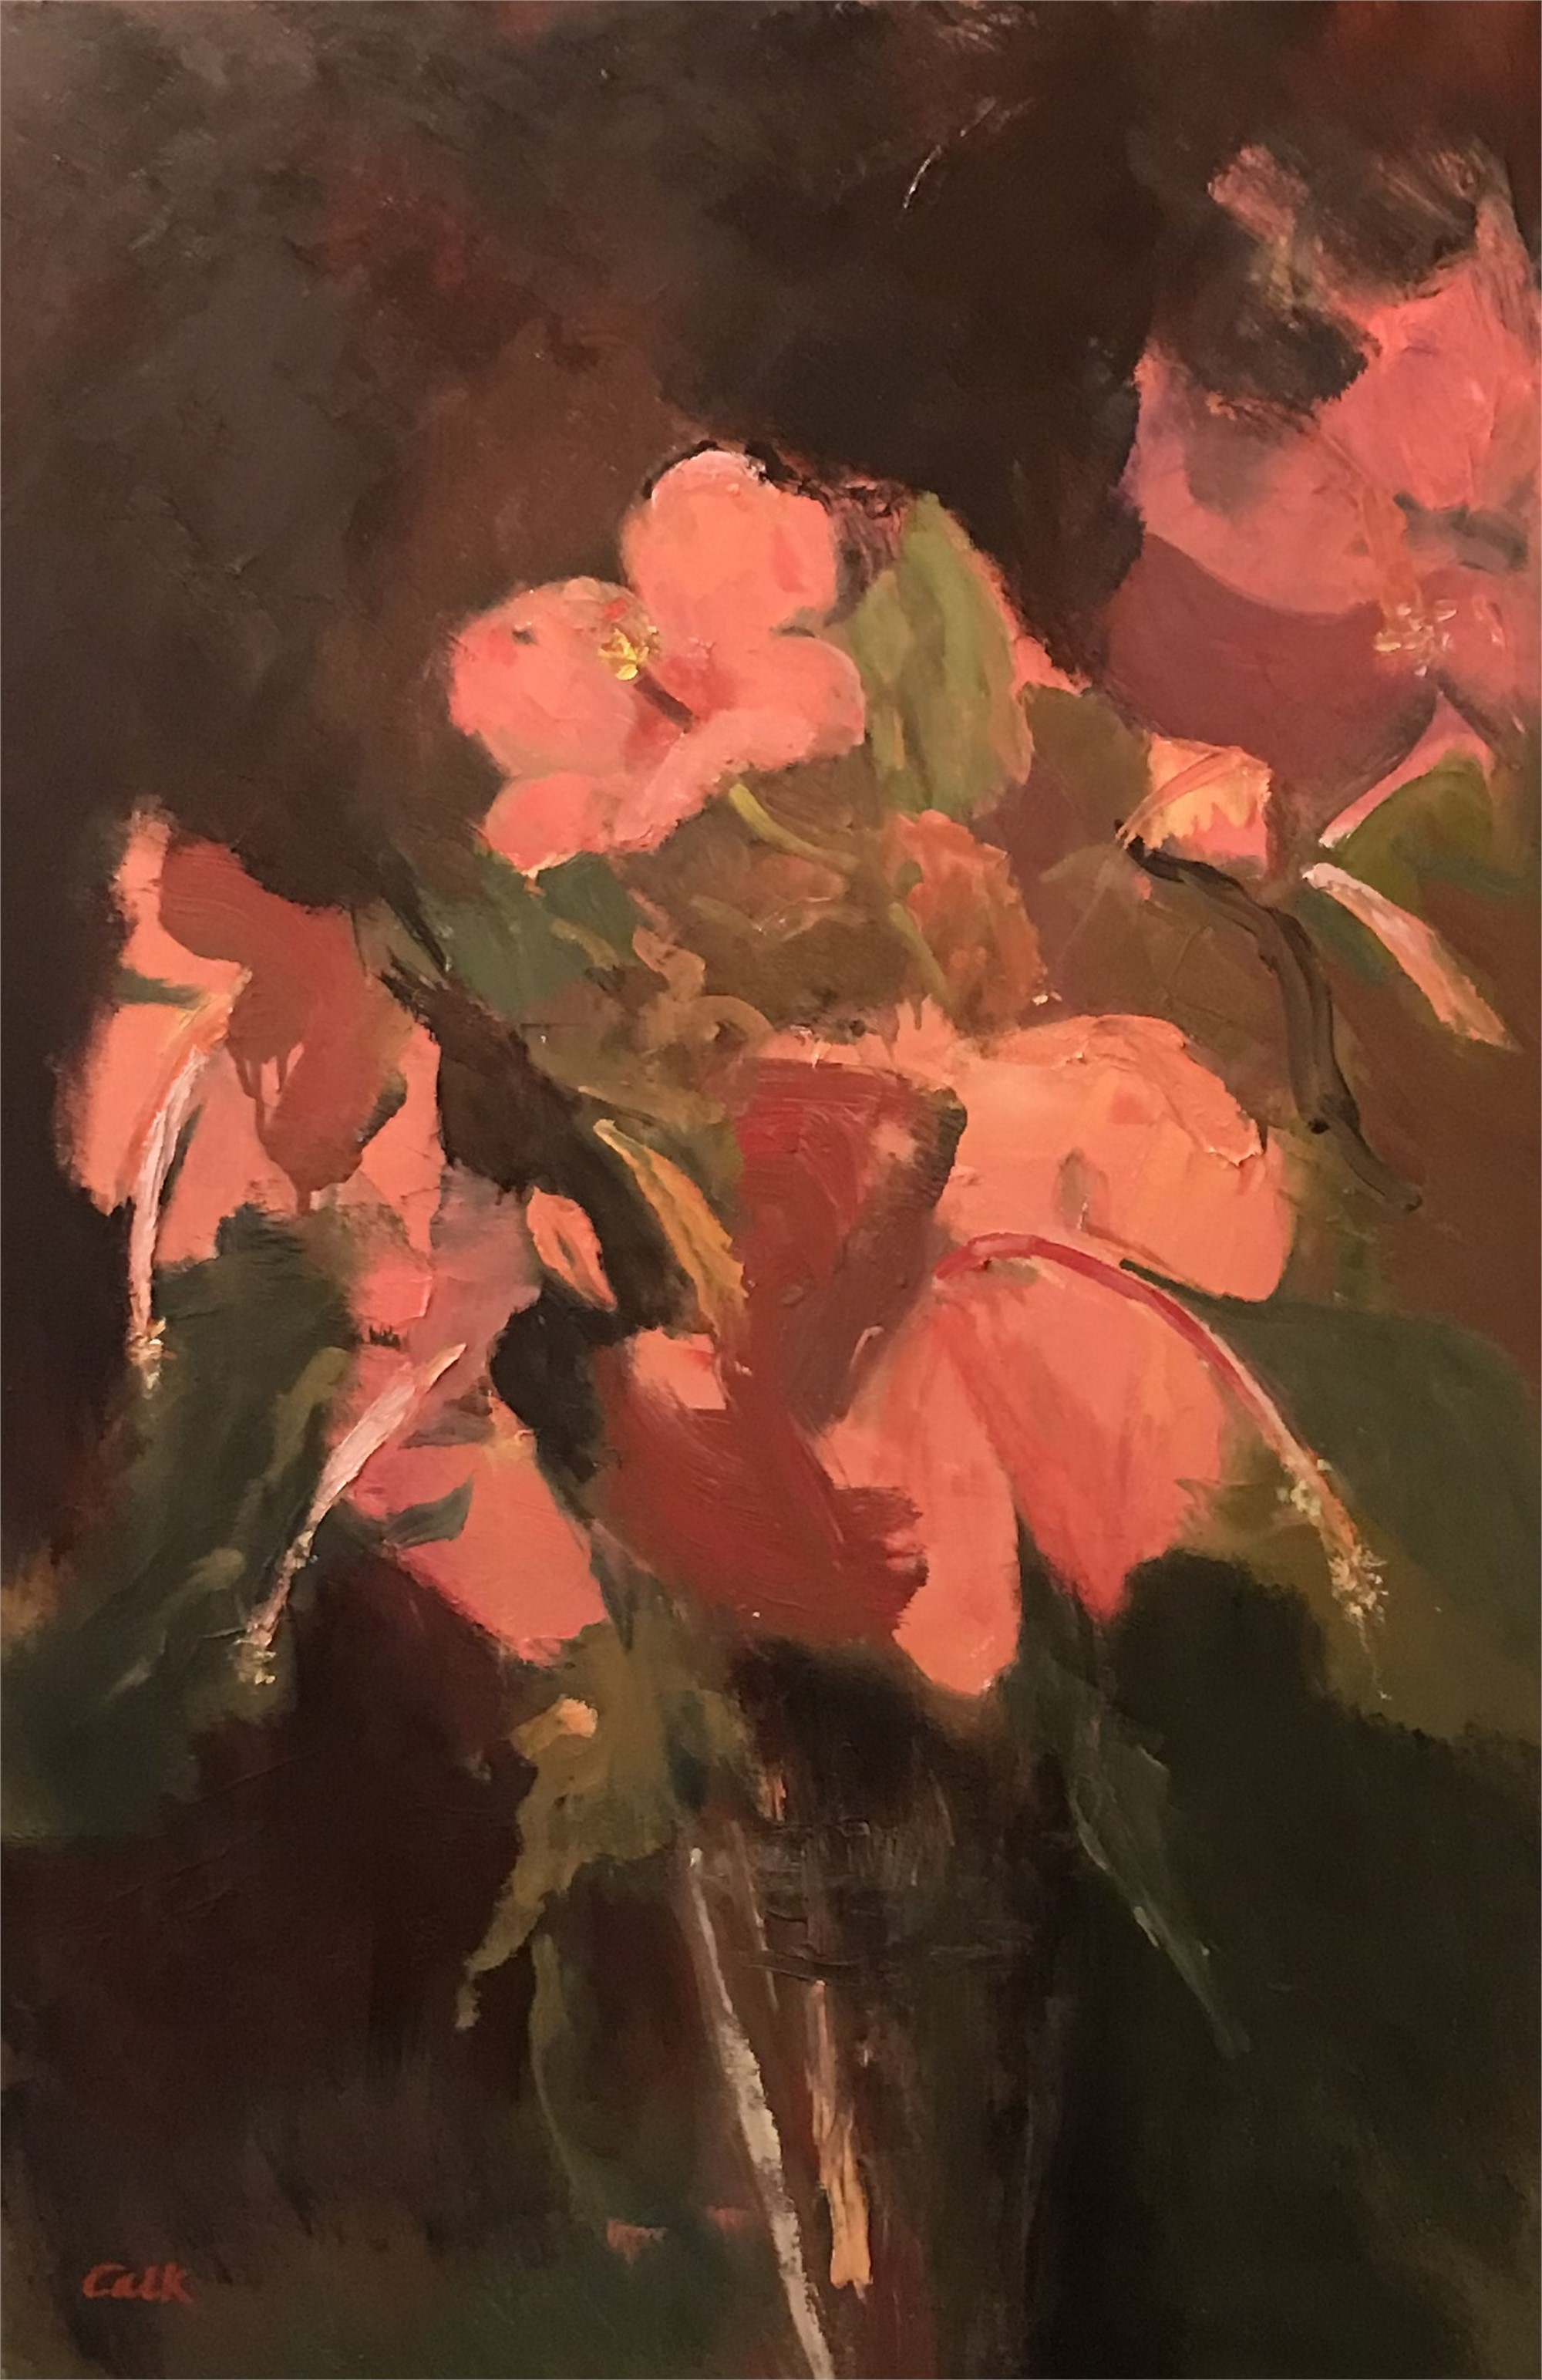 Hibiscus by James Calk